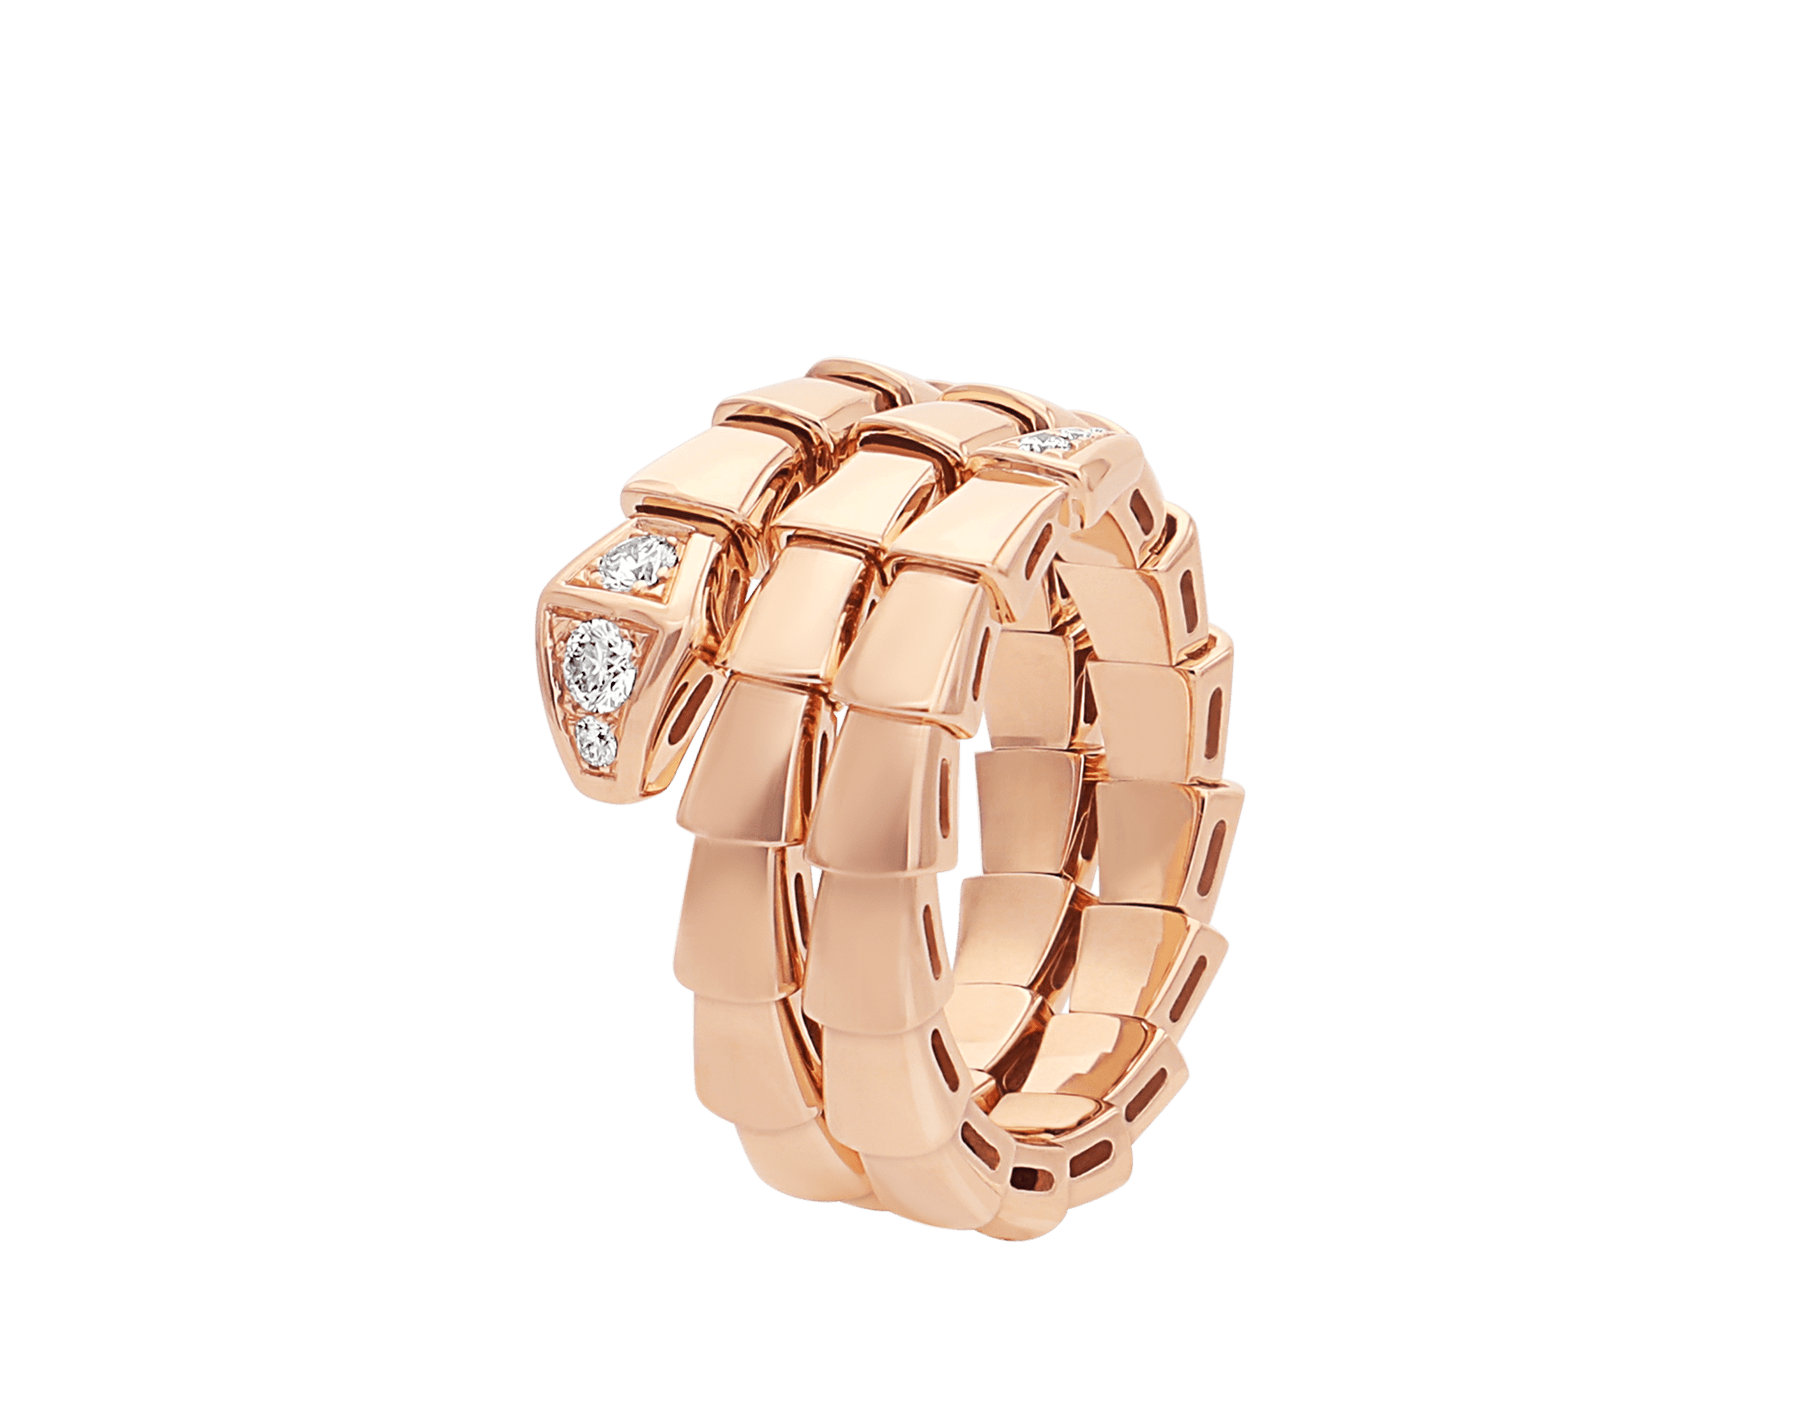 Serpenti Viper two-coil 18 kt rose gold ring set with demi-pavé diamonds AN858824 image 1